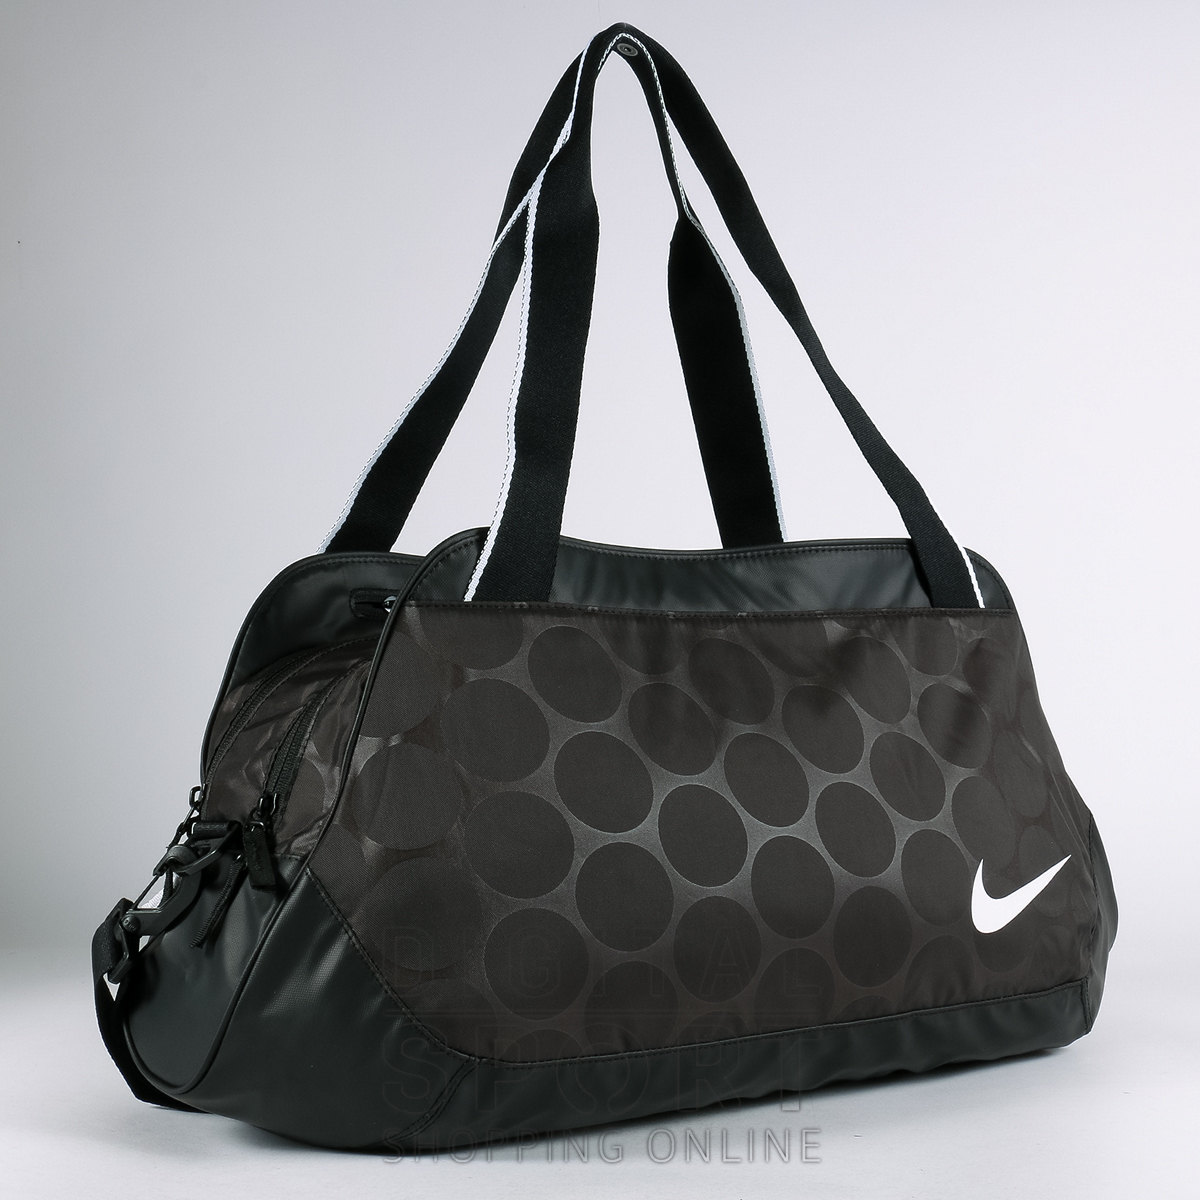 9ac4d3da2 Carteras Y Bolsos Nike Para Mujer | Stanford Center for Opportunity ...